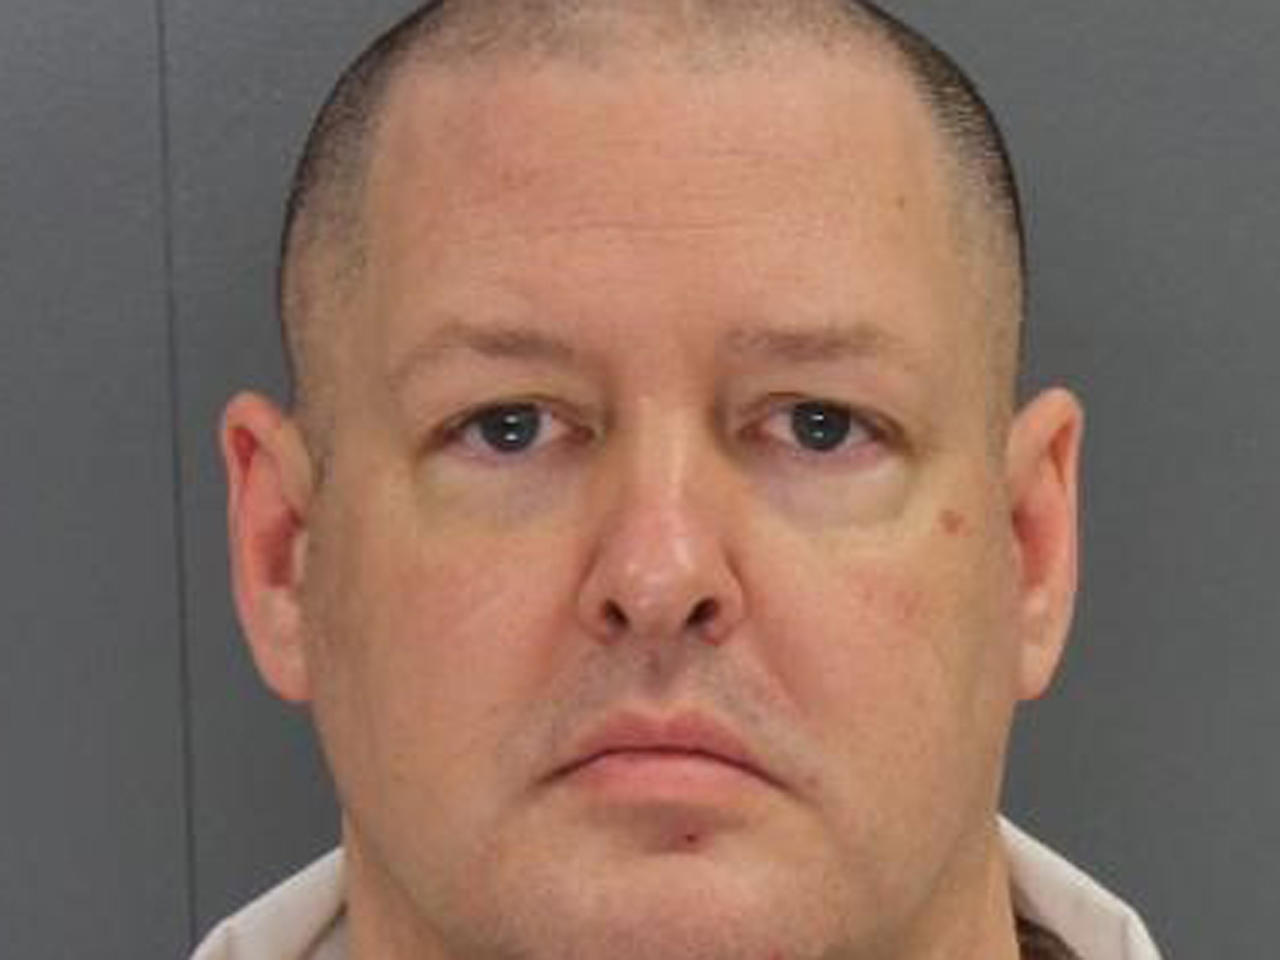 Serial killer Todd Kohlhepp claims 2 more victims buried in